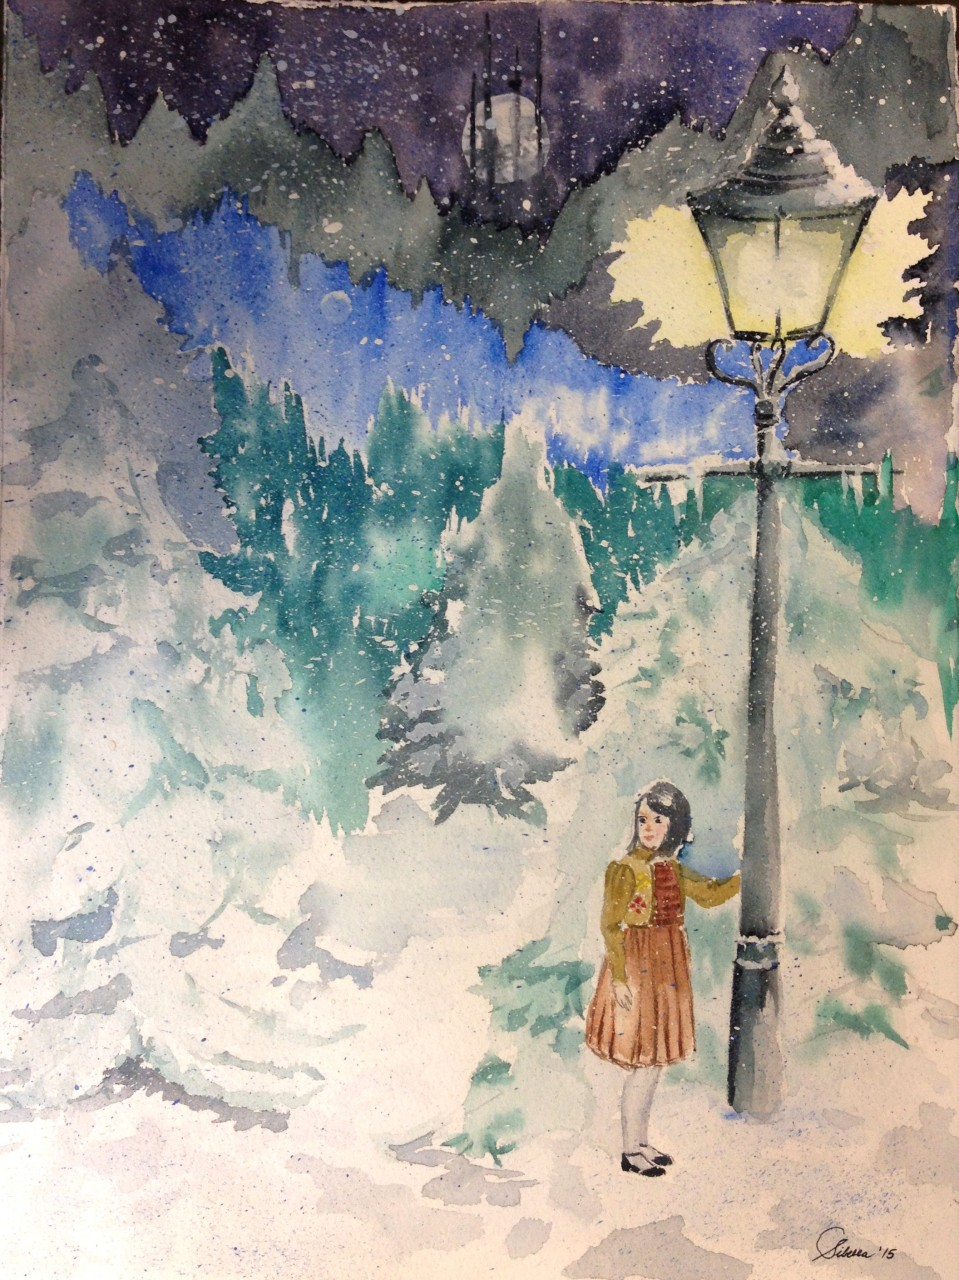 Narnia Illustration#1